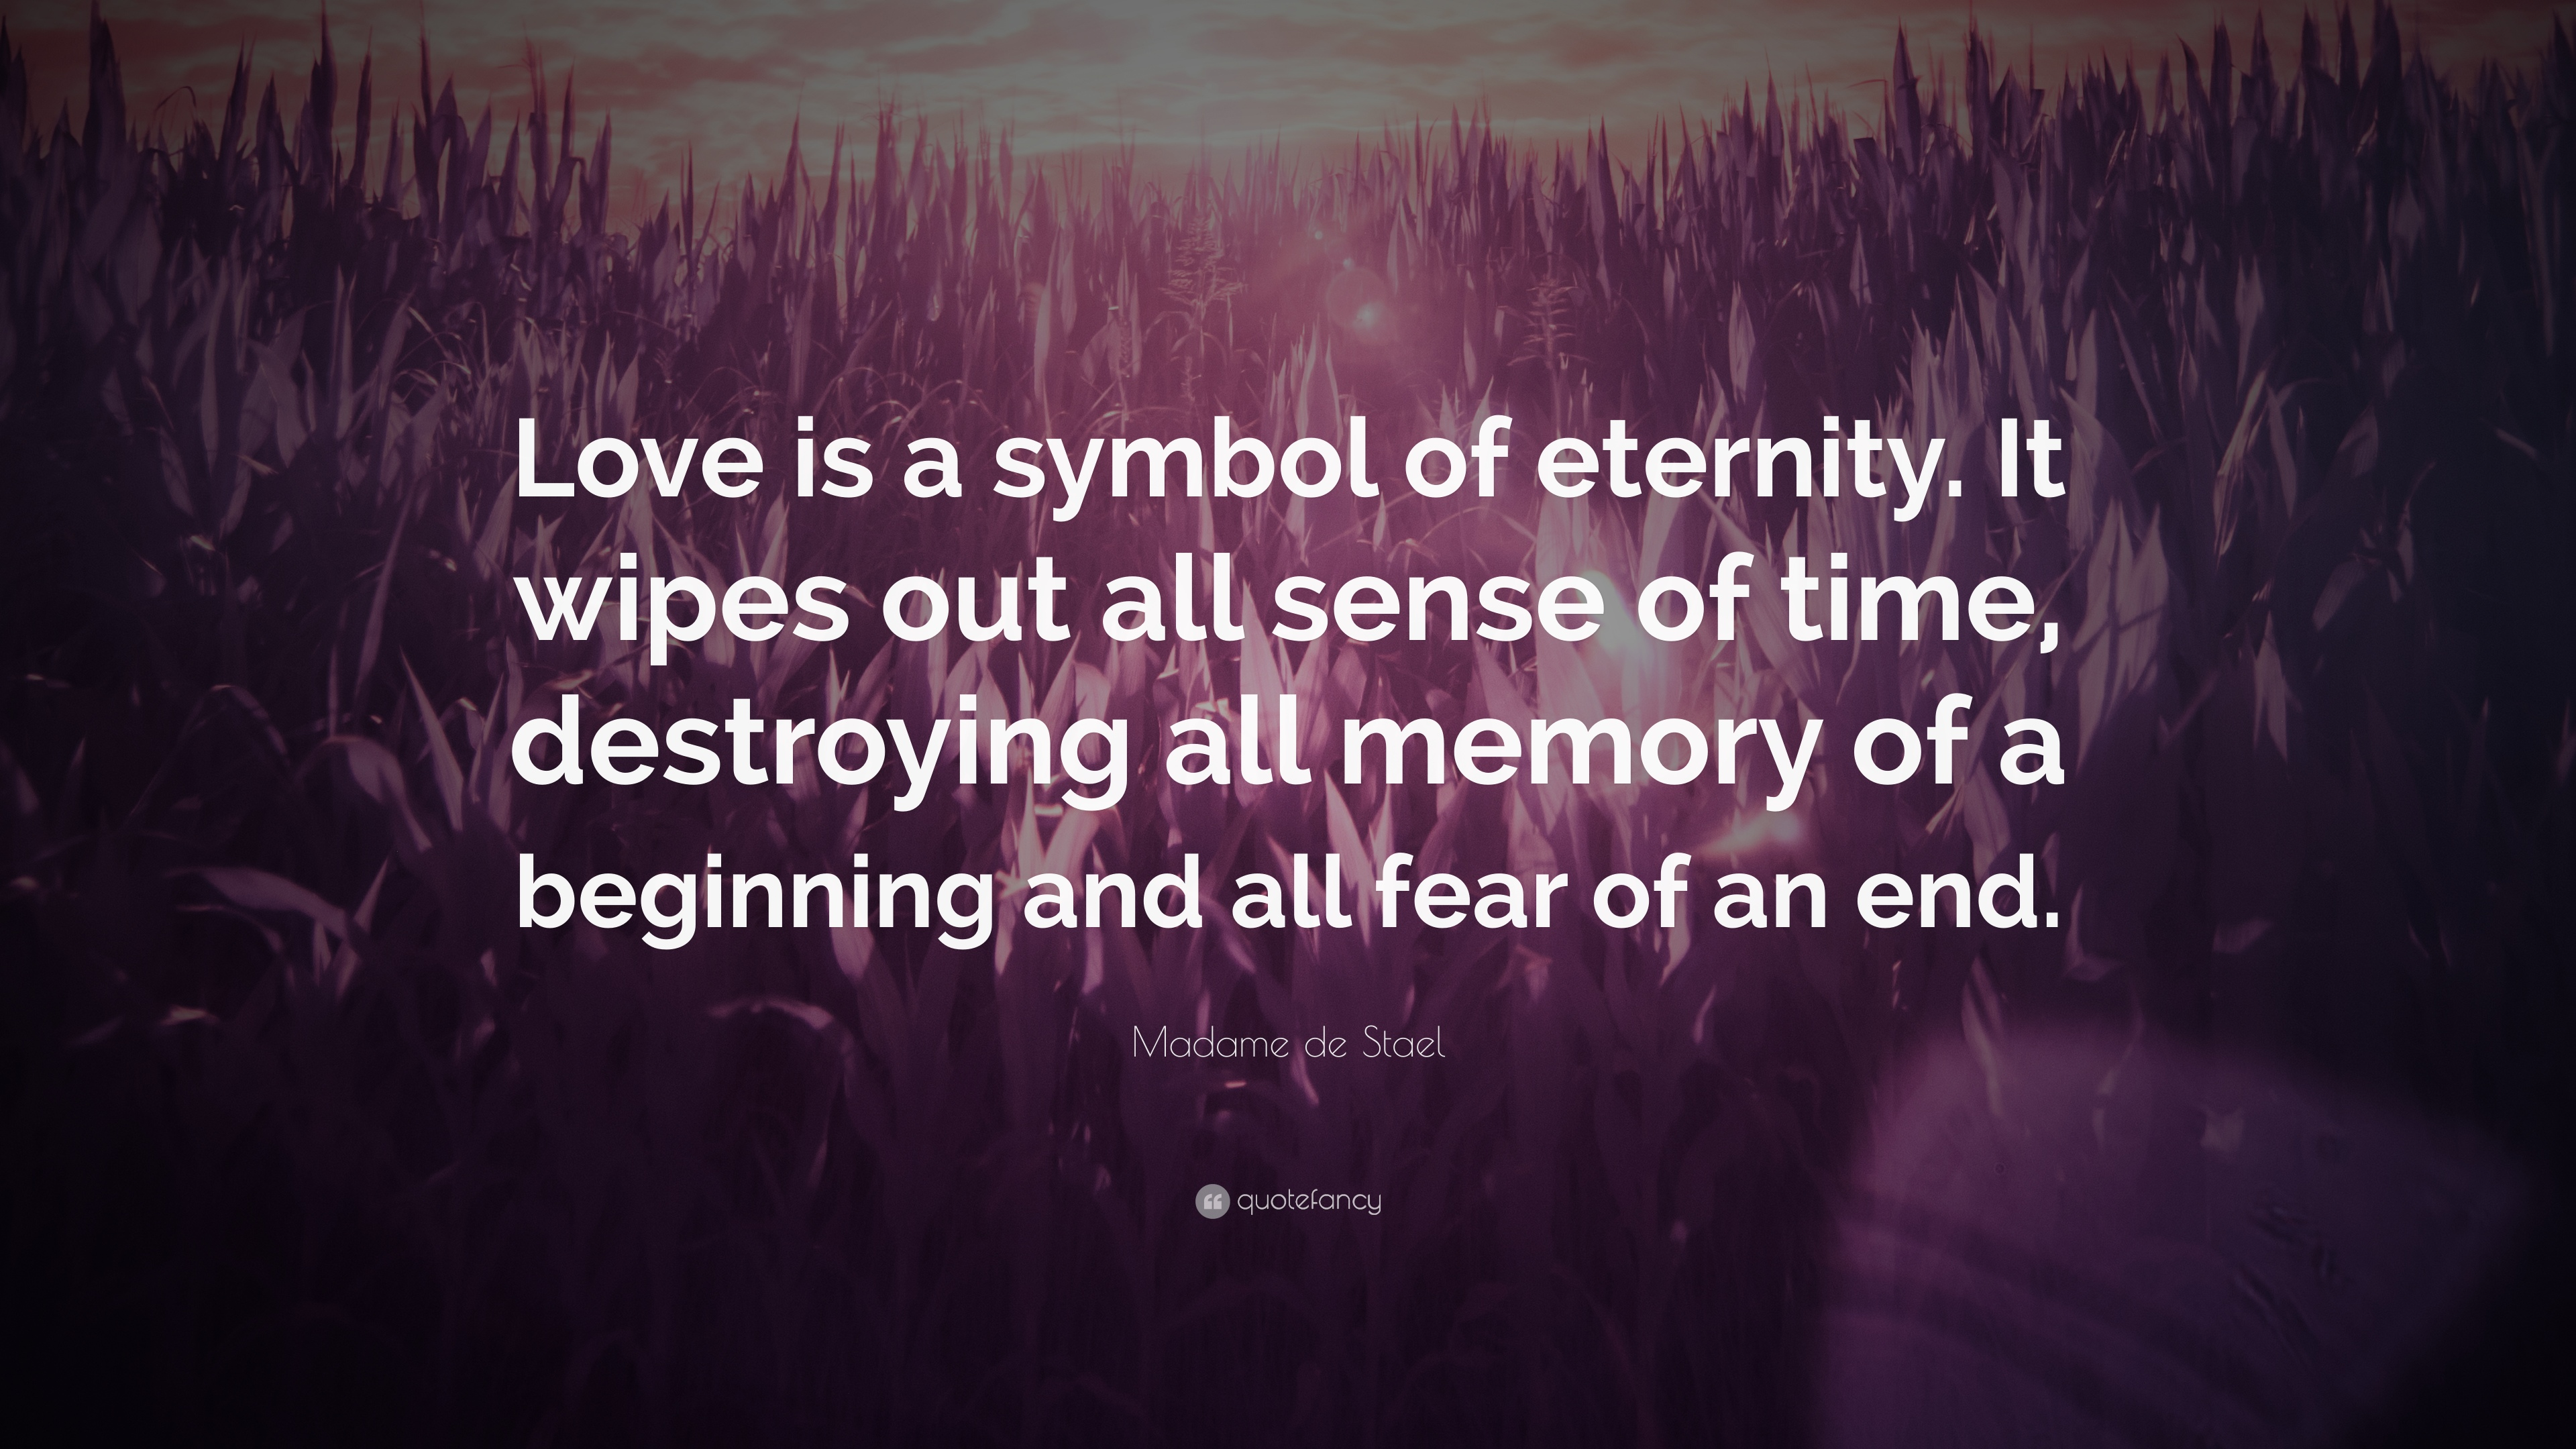 Madame de stael quote love is a symbol of eternity it wipes out madame de stael quote love is a symbol of eternity it wipes out biocorpaavc Images